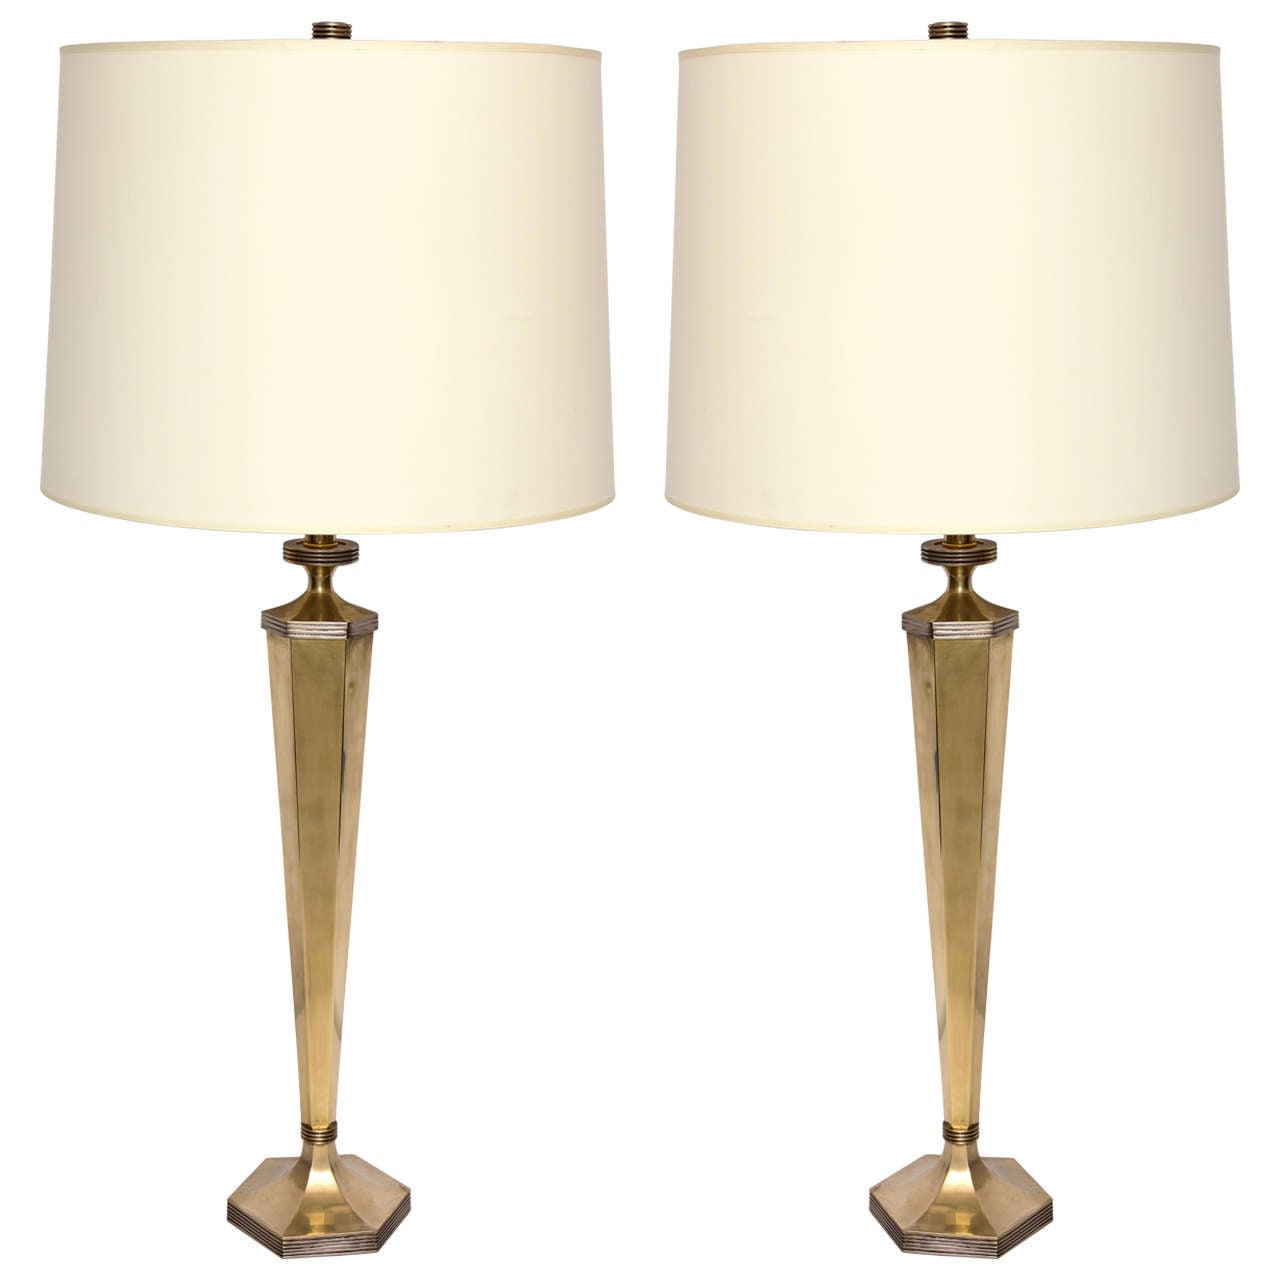 Pair Of 1940s Art Moderne Brass And Silver Table Lamps At